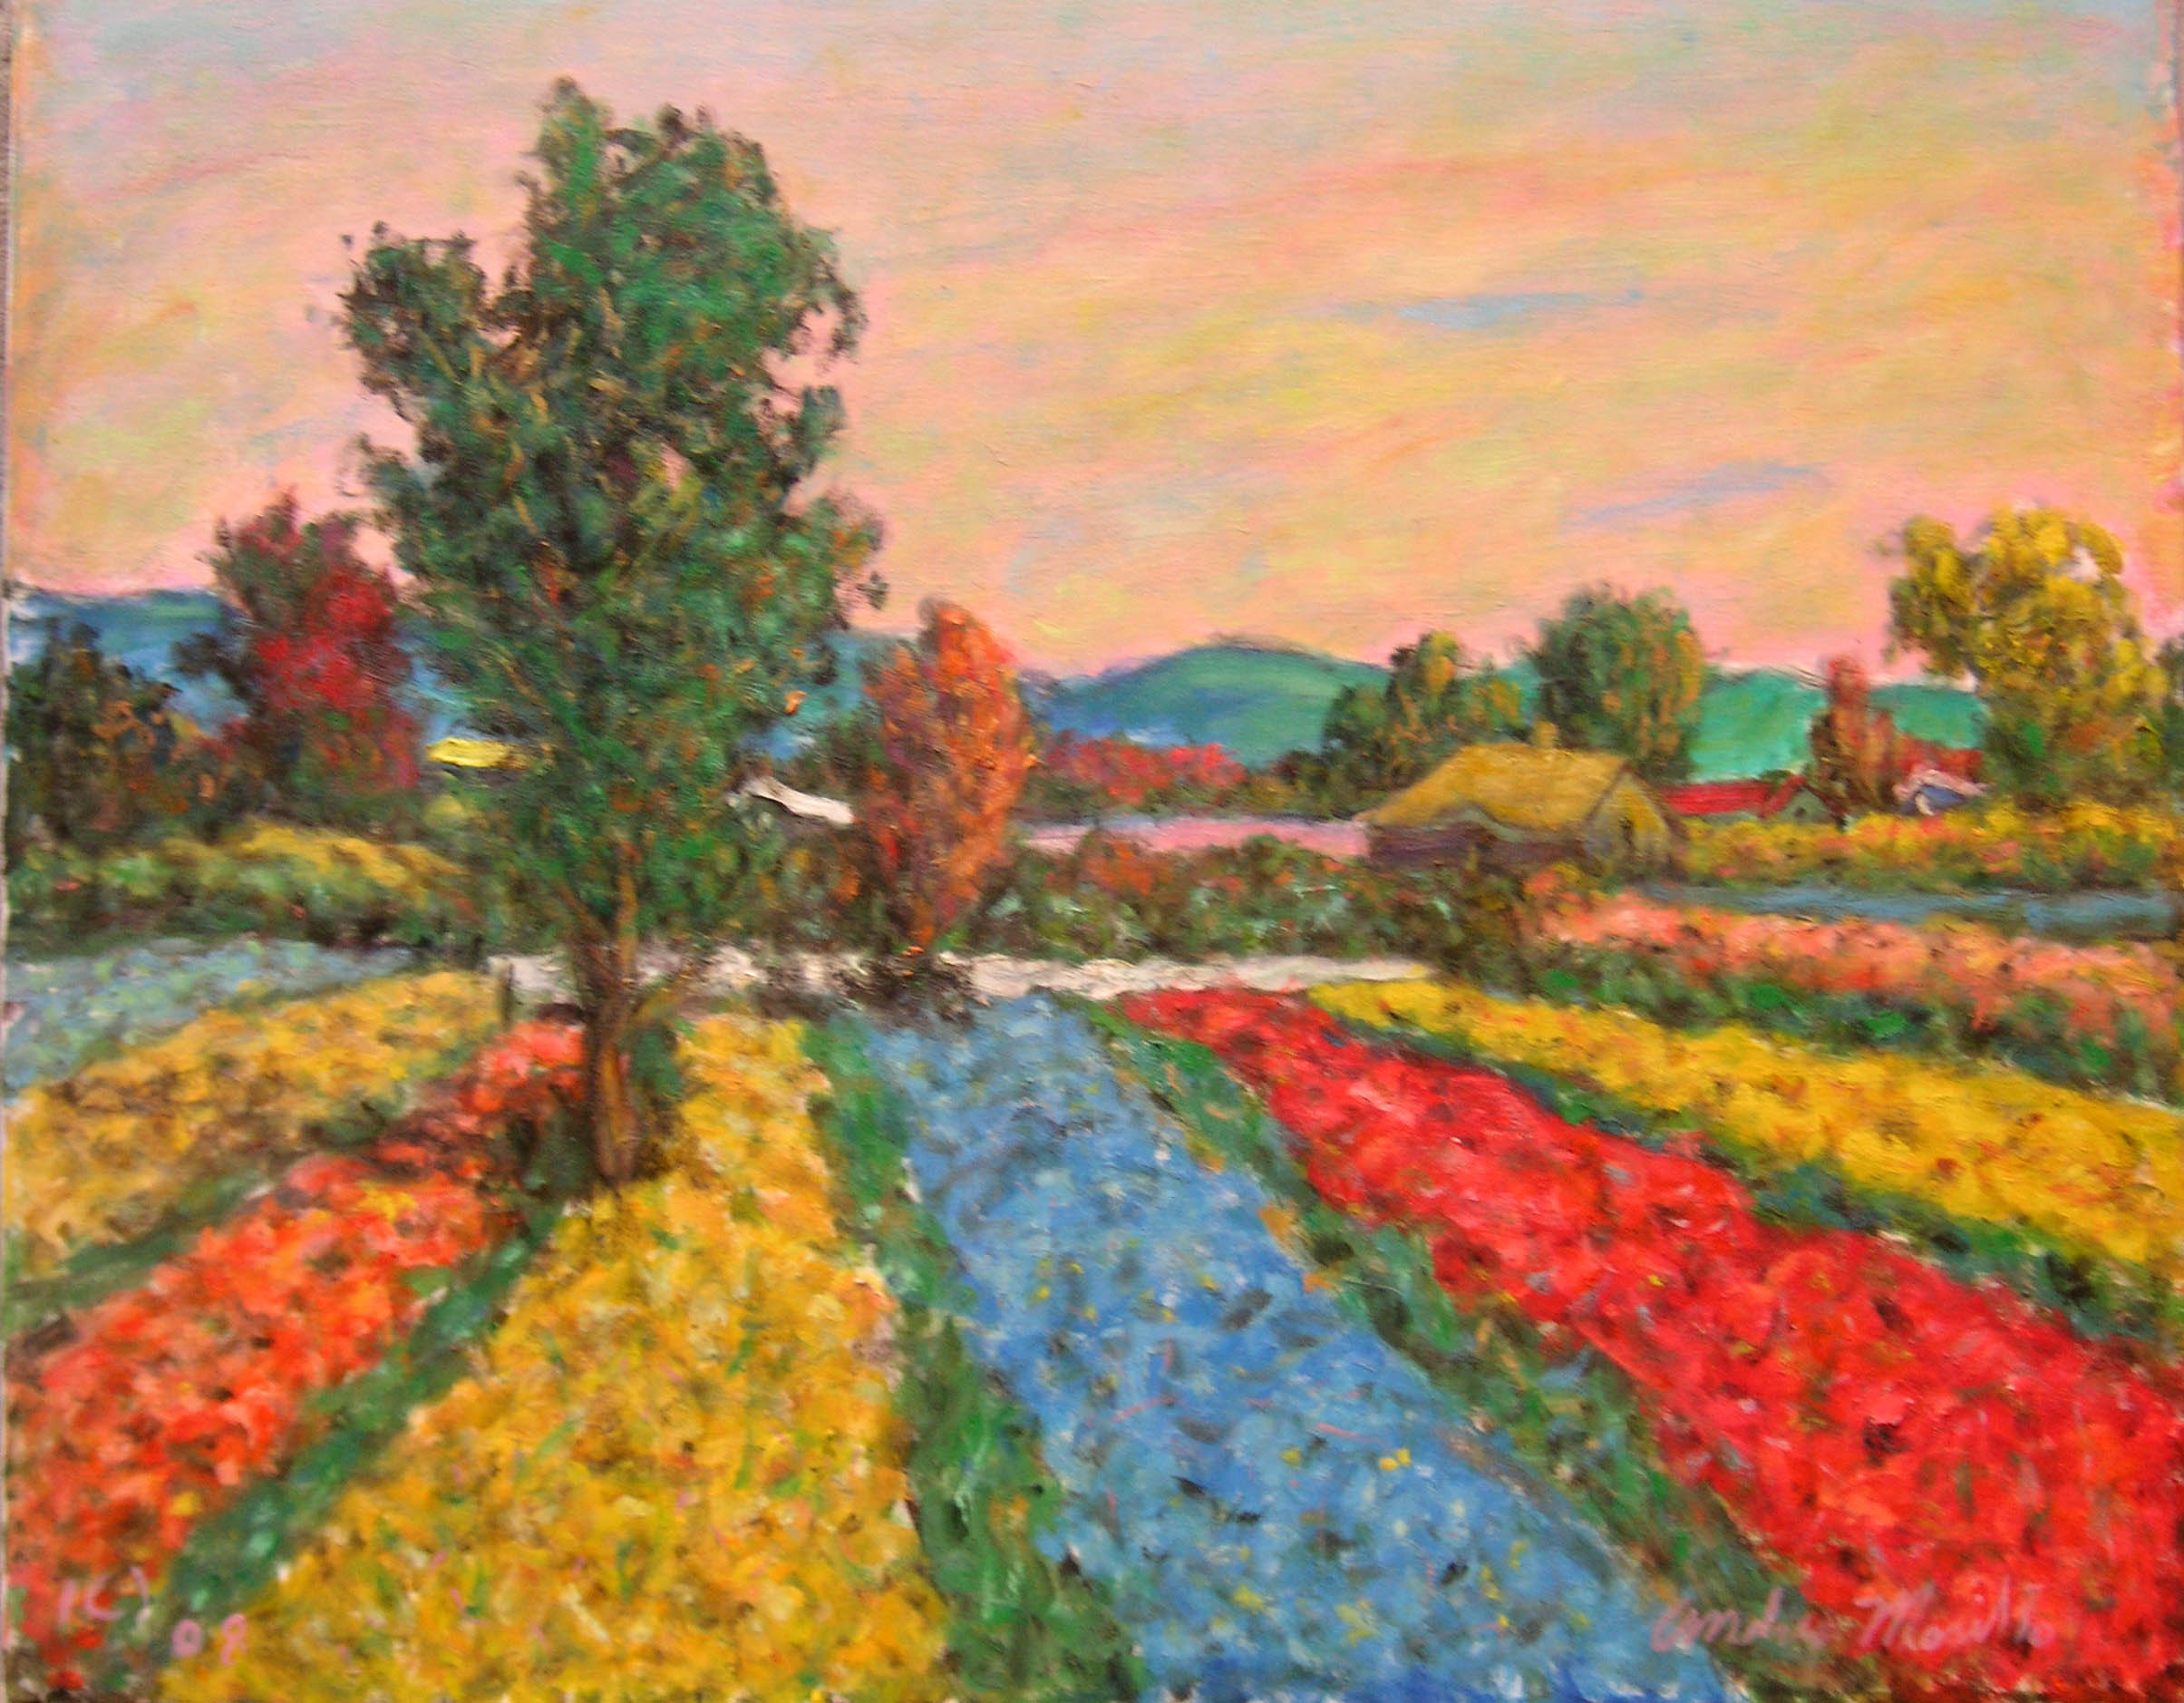 Flower Farms In Spring by  Andres  Morillo - Masterpiece Online